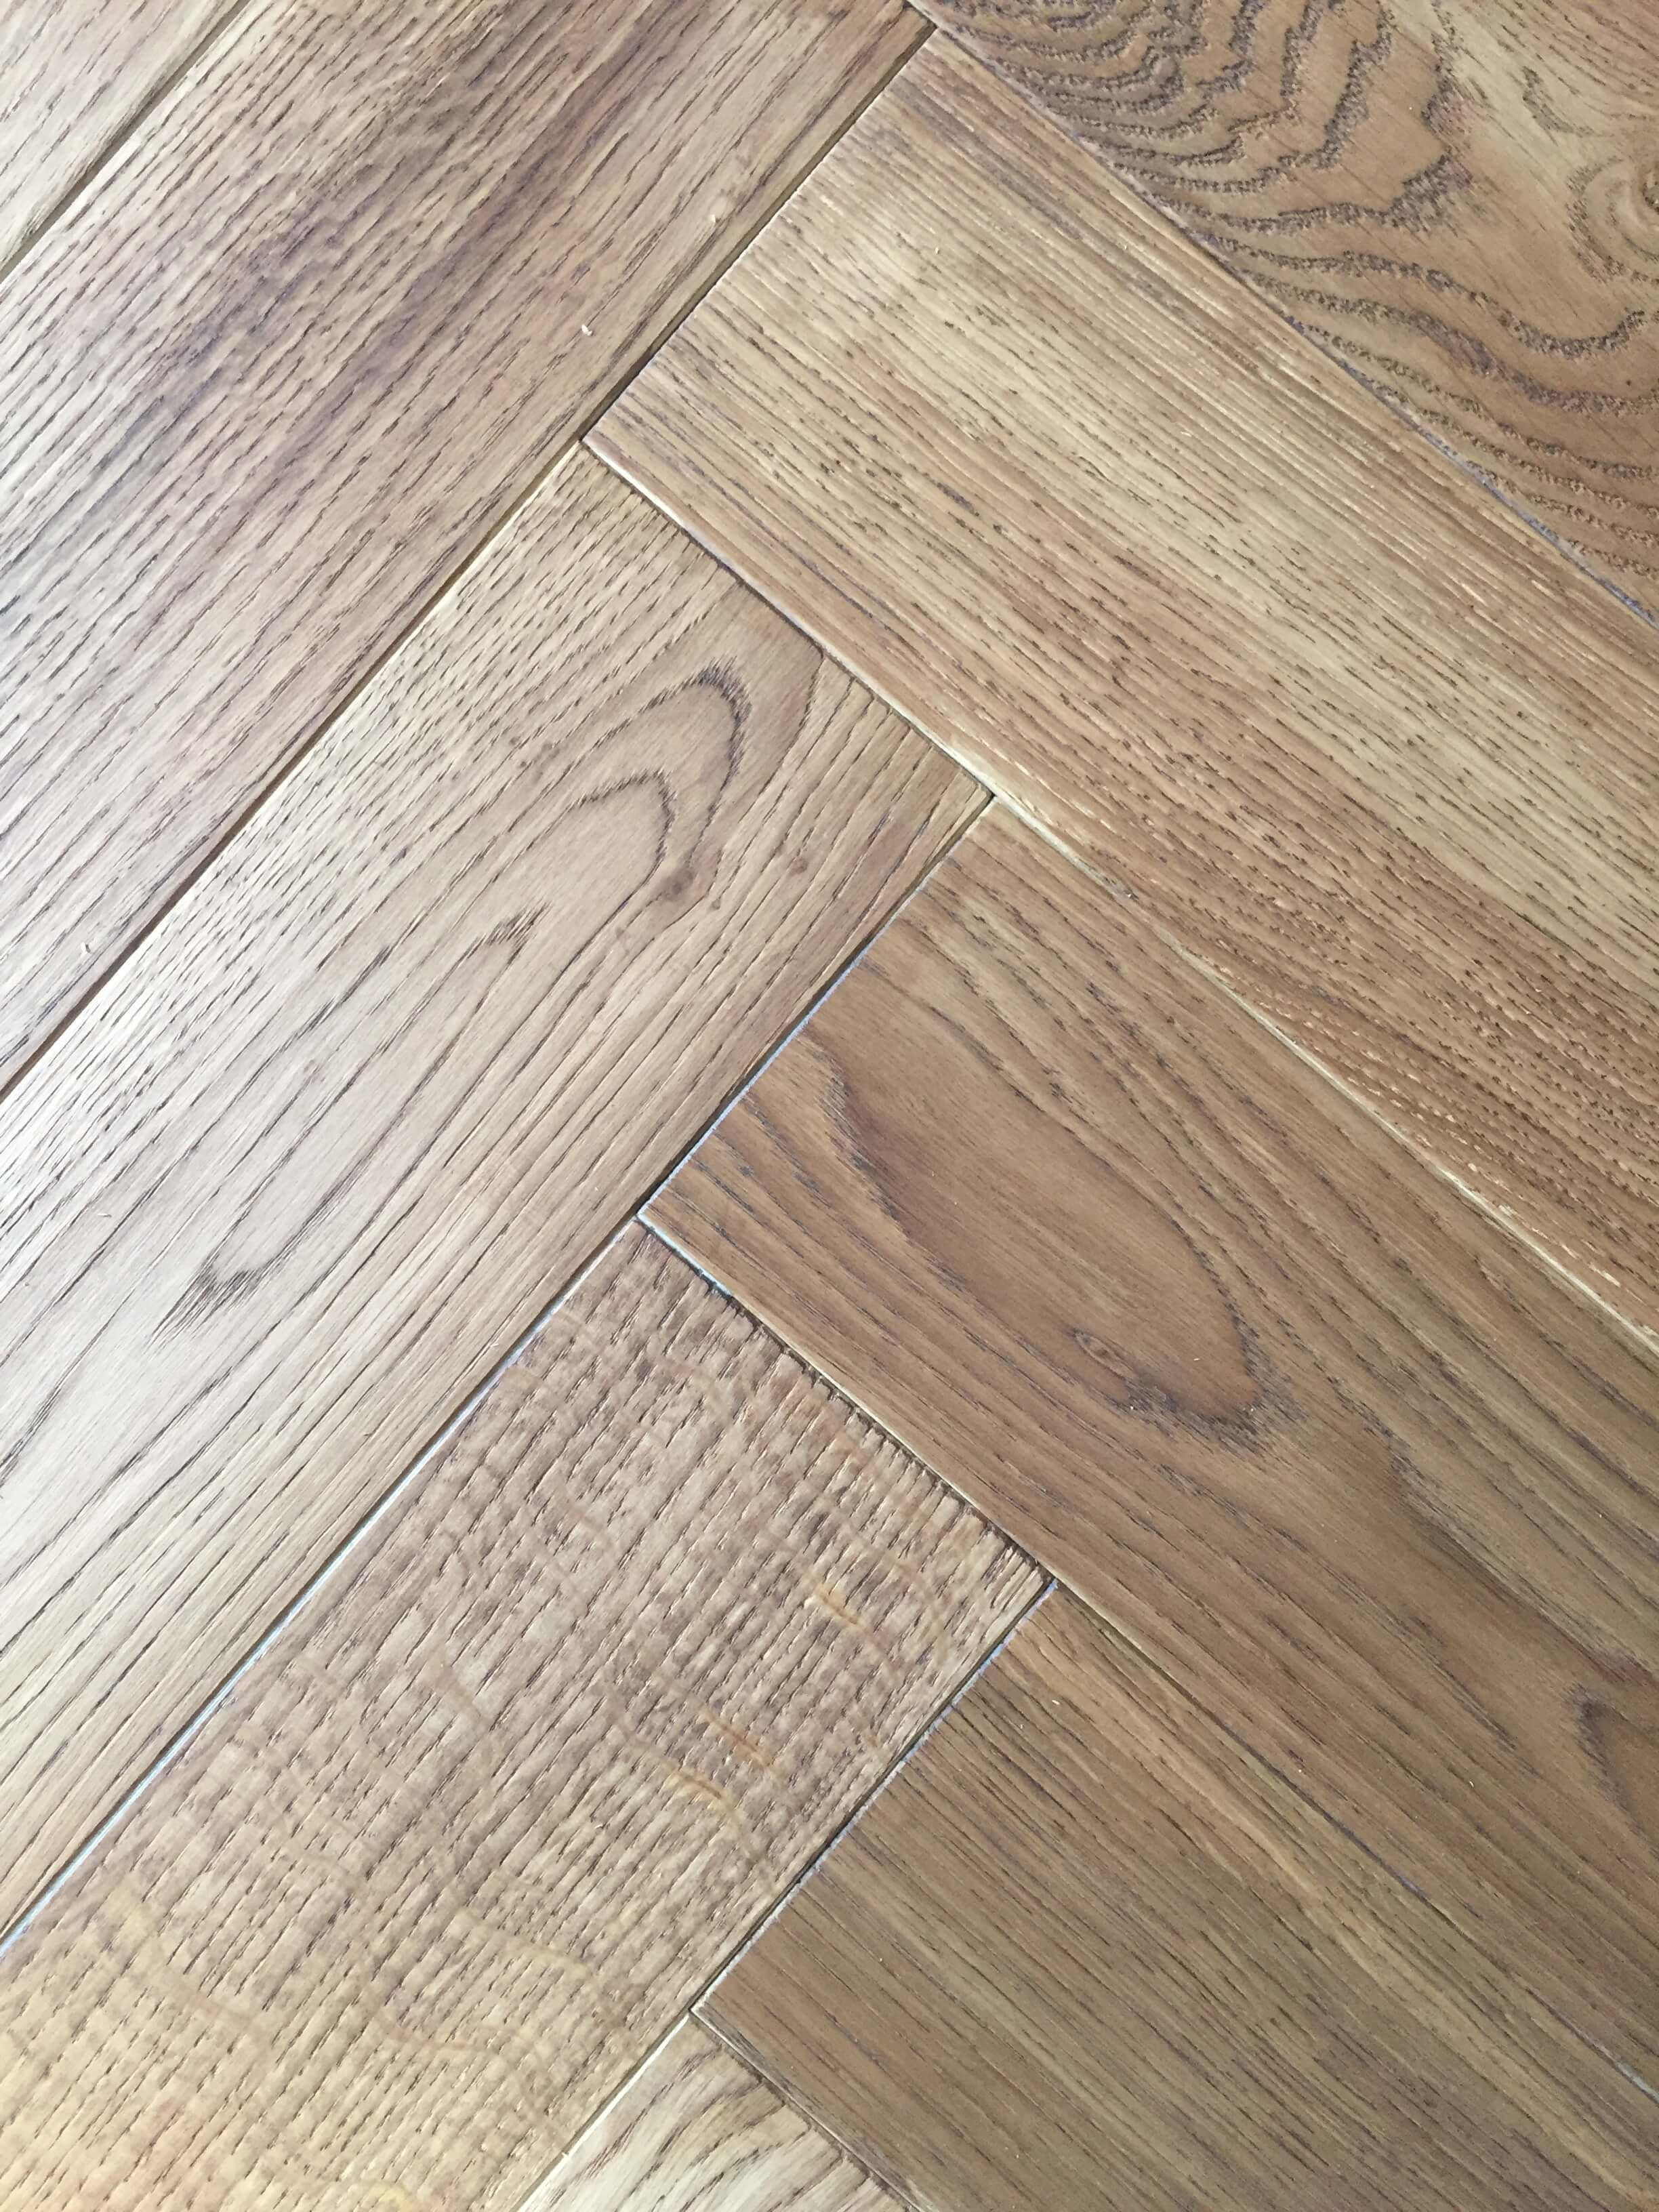 wholesale hardwood flooring nashville of 38 elegant brown laminate flooring pics flooring design ideas regarding brown laminate flooring elegant where to buy laminate flooring collection of 38 elegant brown laminate flooring